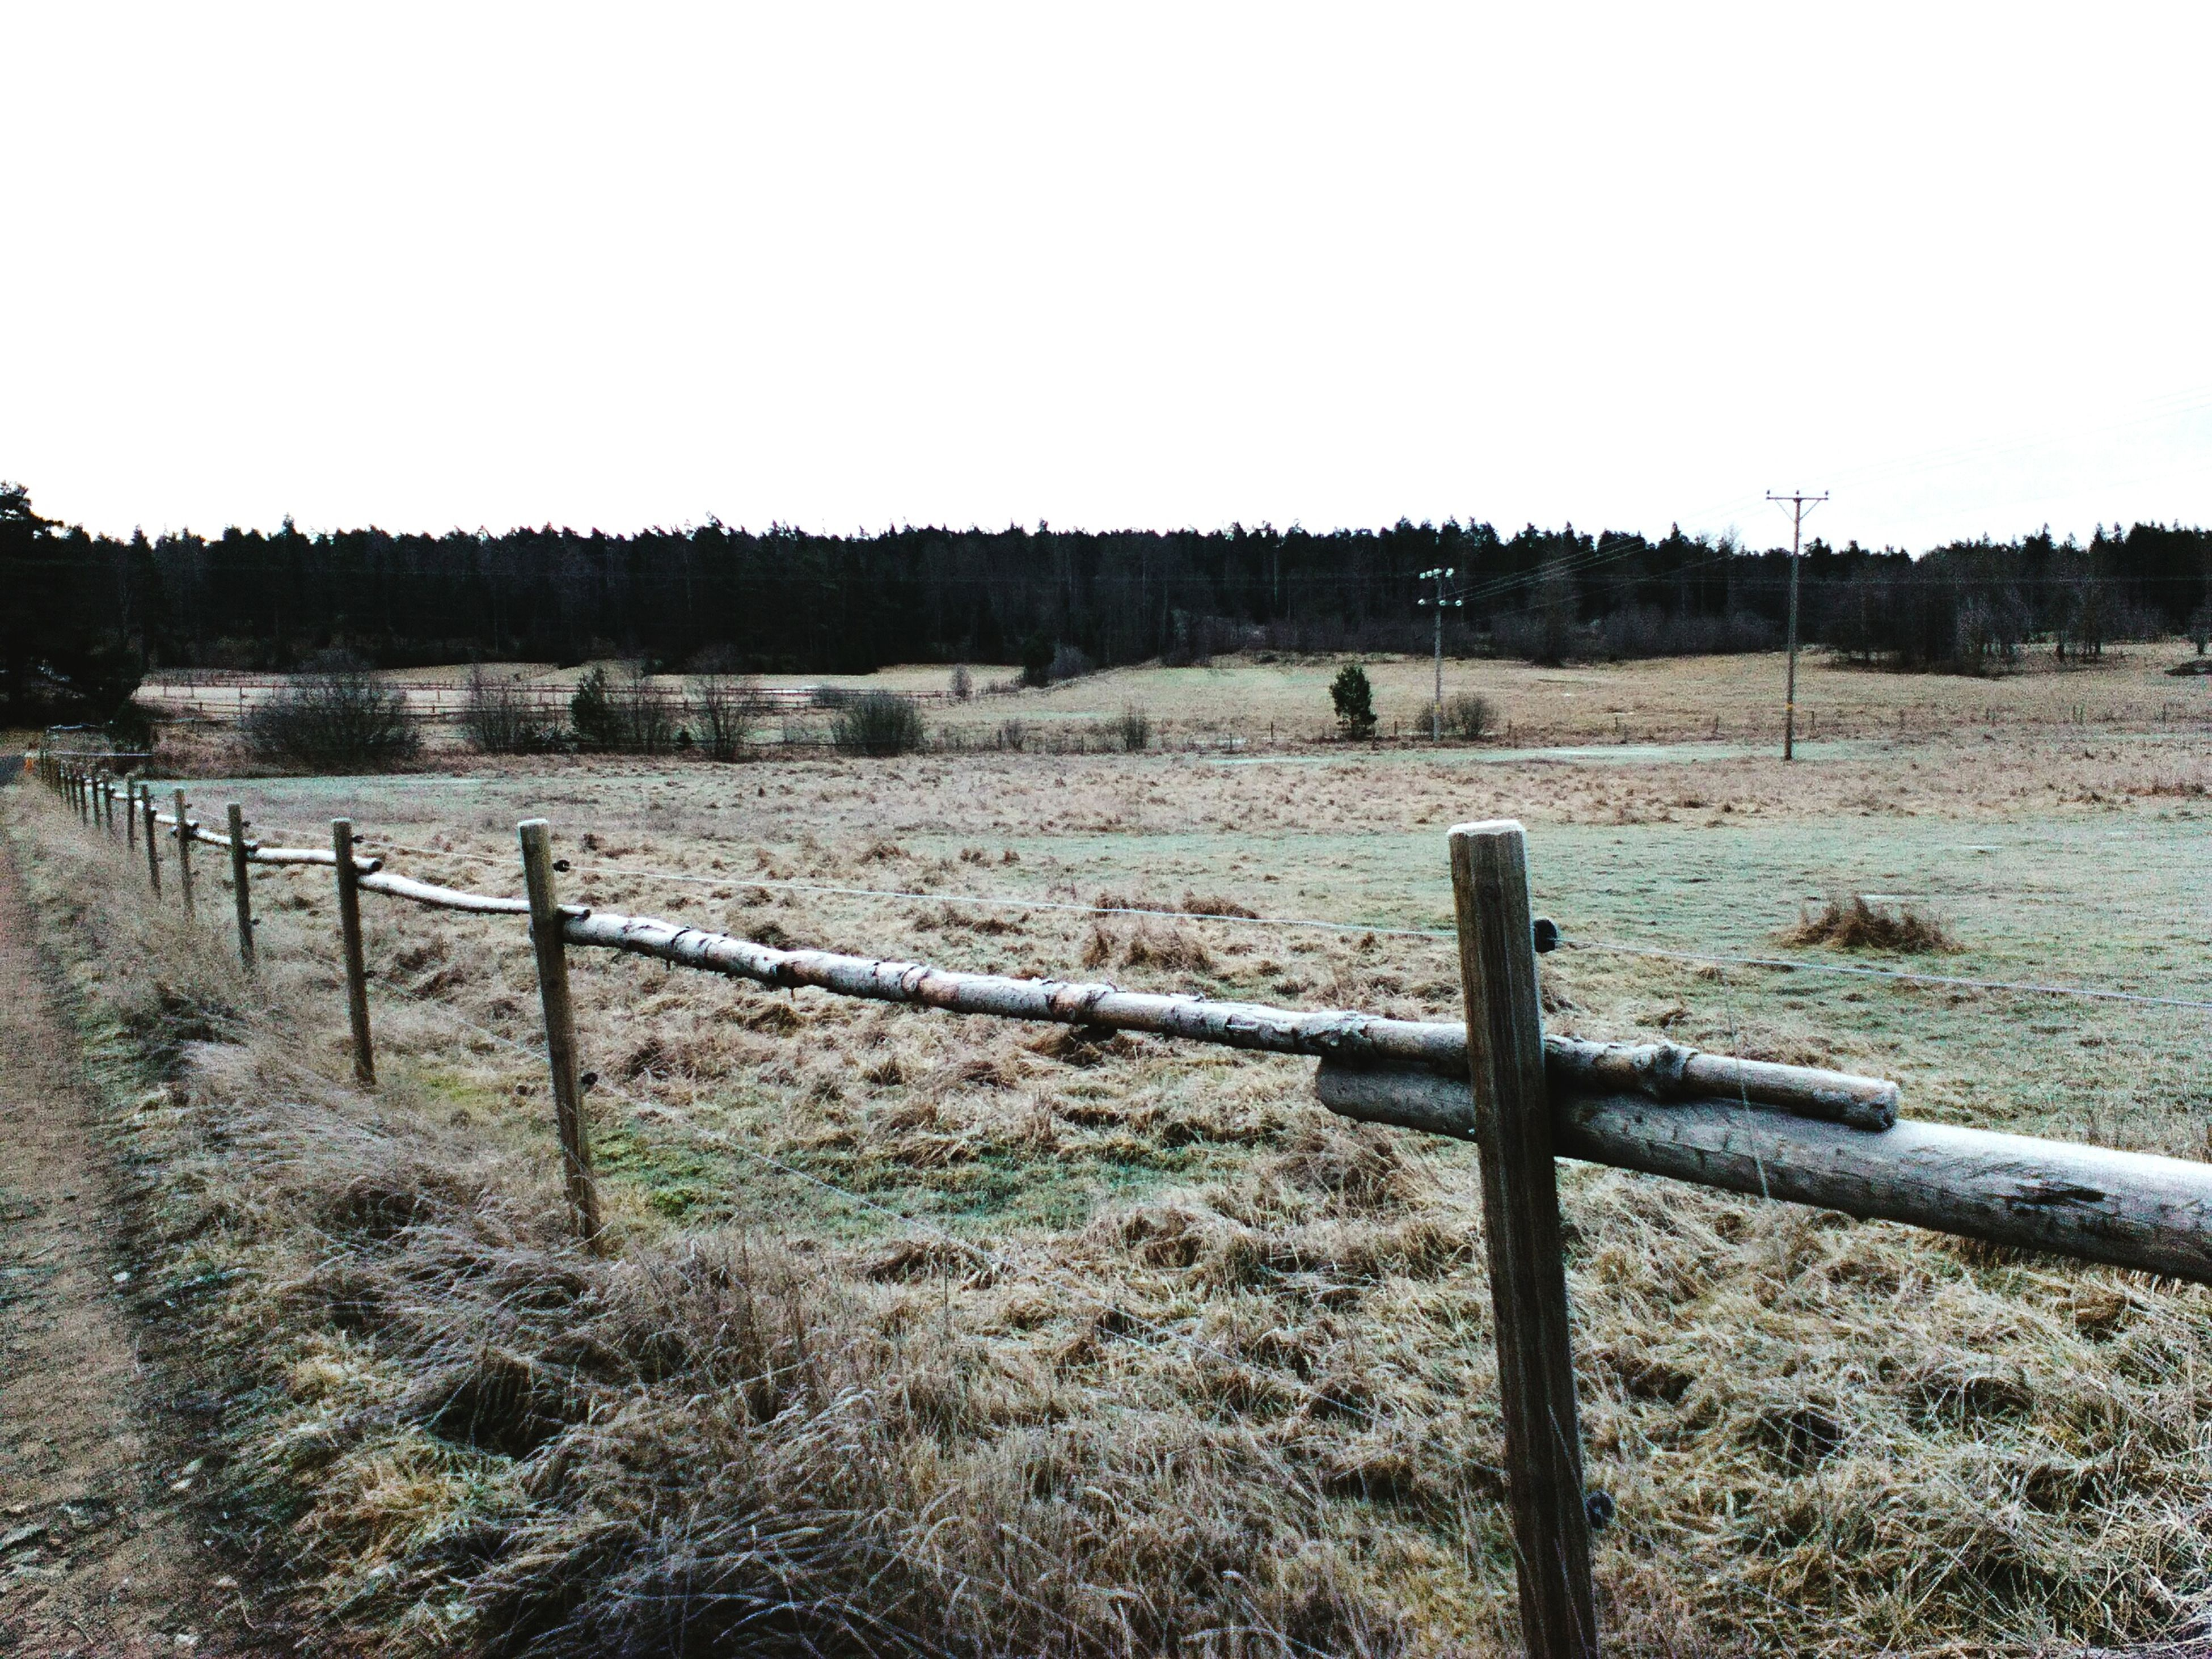 fence, field, landscape, tranquility, tranquil scene, clear sky, grass, protection, nature, rural scene, safety, copy space, wooden post, scenics, sky, wood - material, security, beauty in nature, no people, non-urban scene